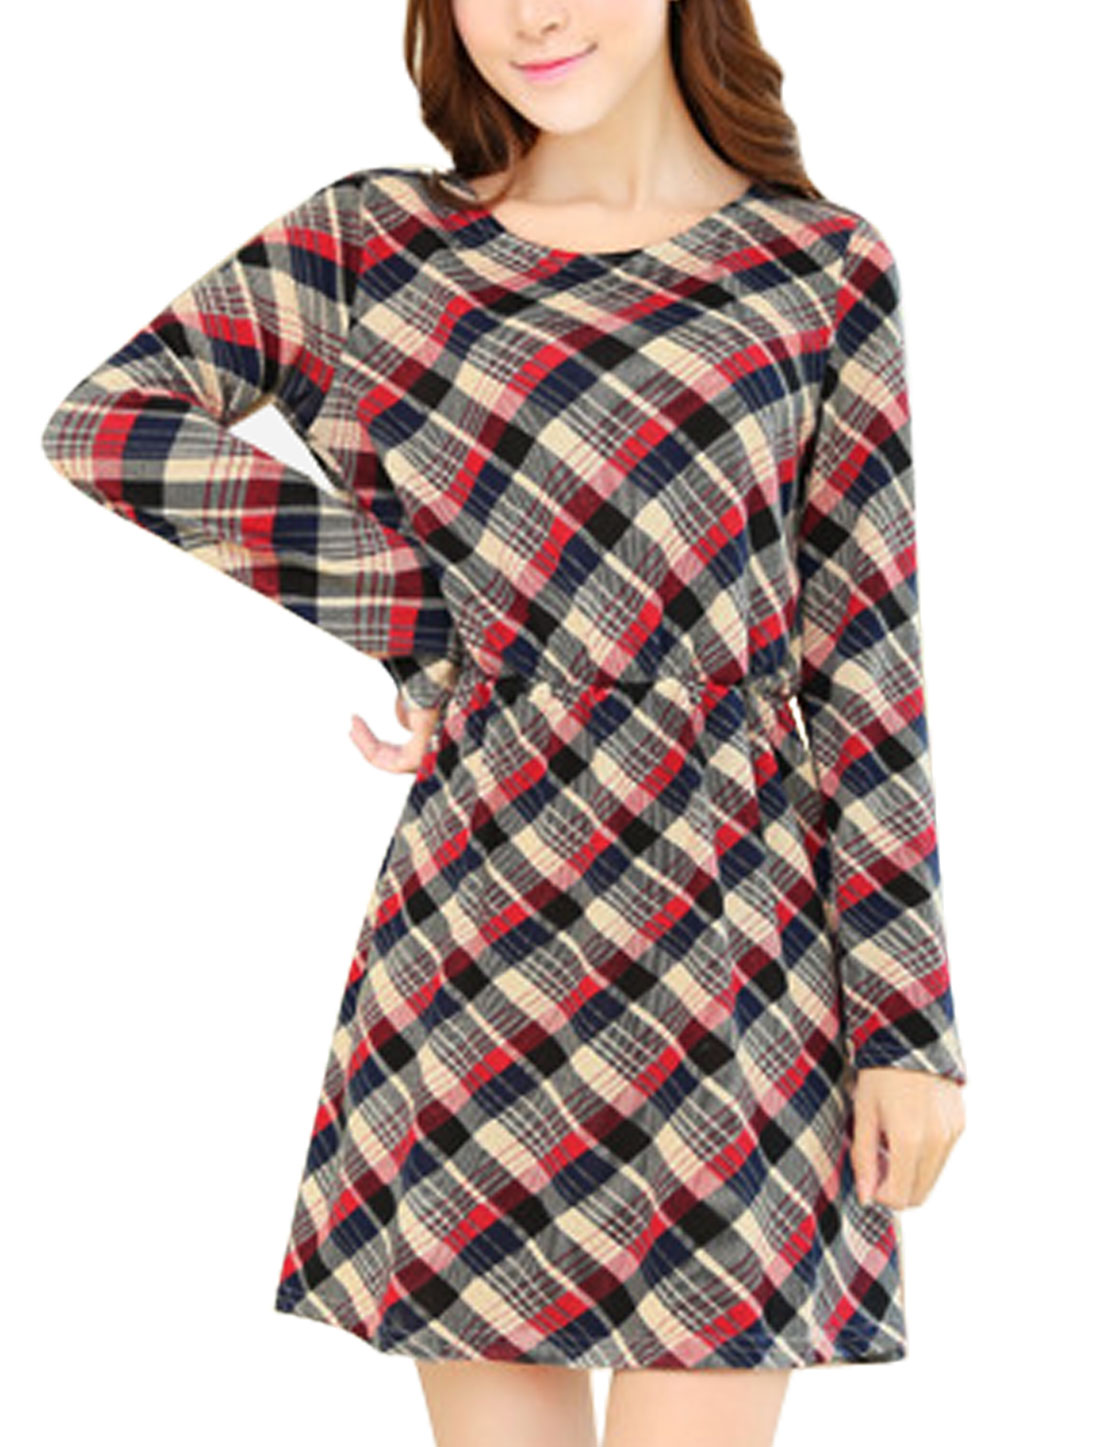 Women Fashion Elastic Waist Allover Plaids Print A Line Dress Navy Blue Red XS